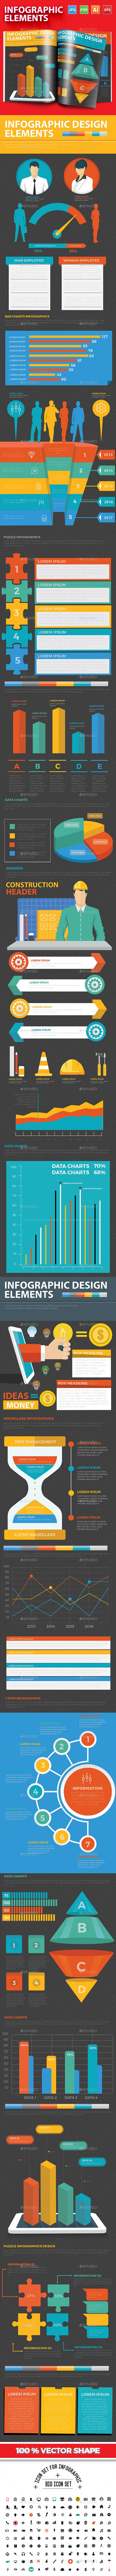 Pin by Cool Design on Business Infographic Pinterest